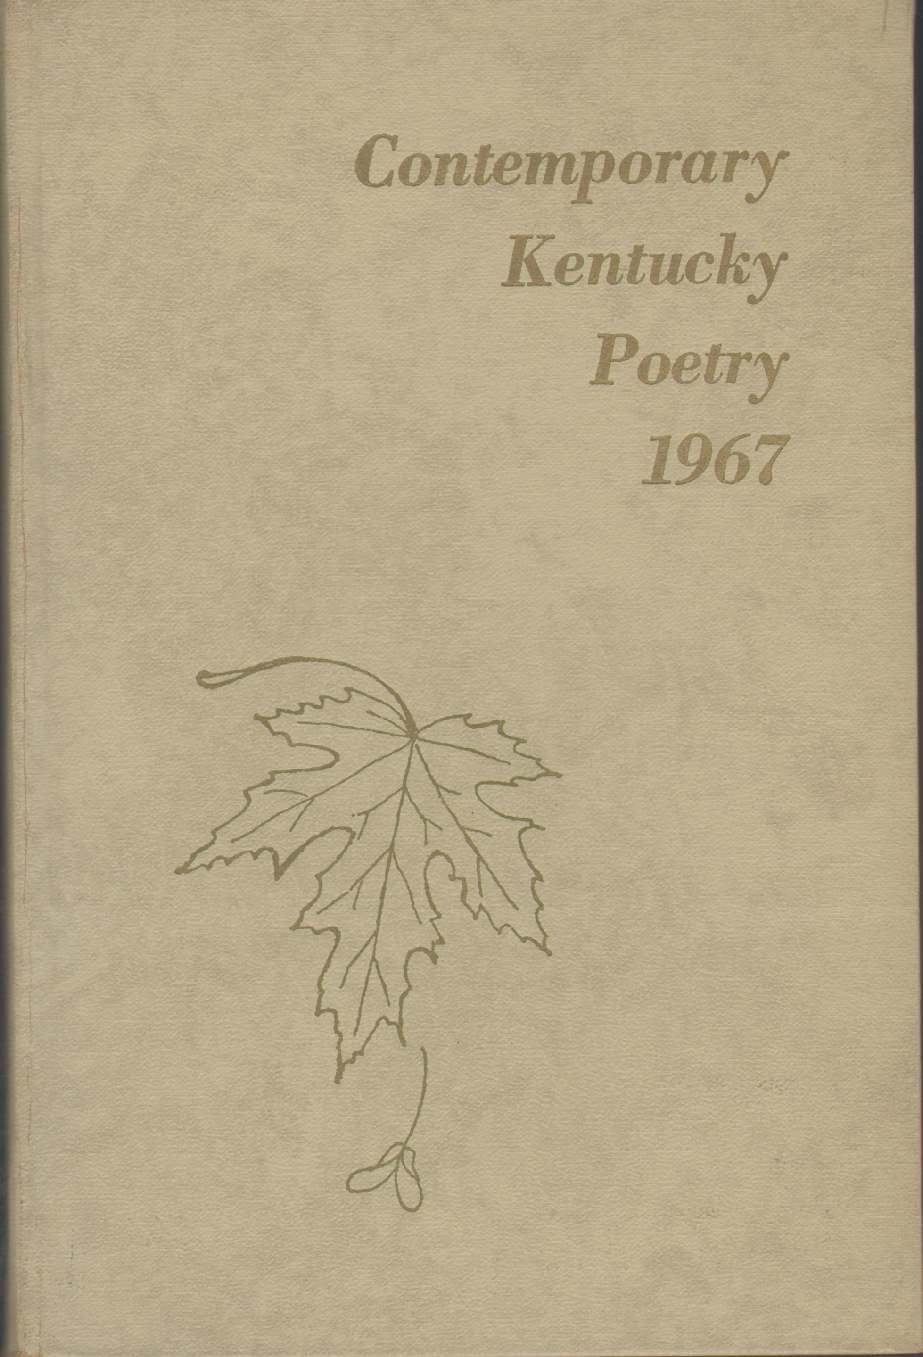 COMTEMPORARY KENTUCKY POETRY 1967, Bale, Joy and Others